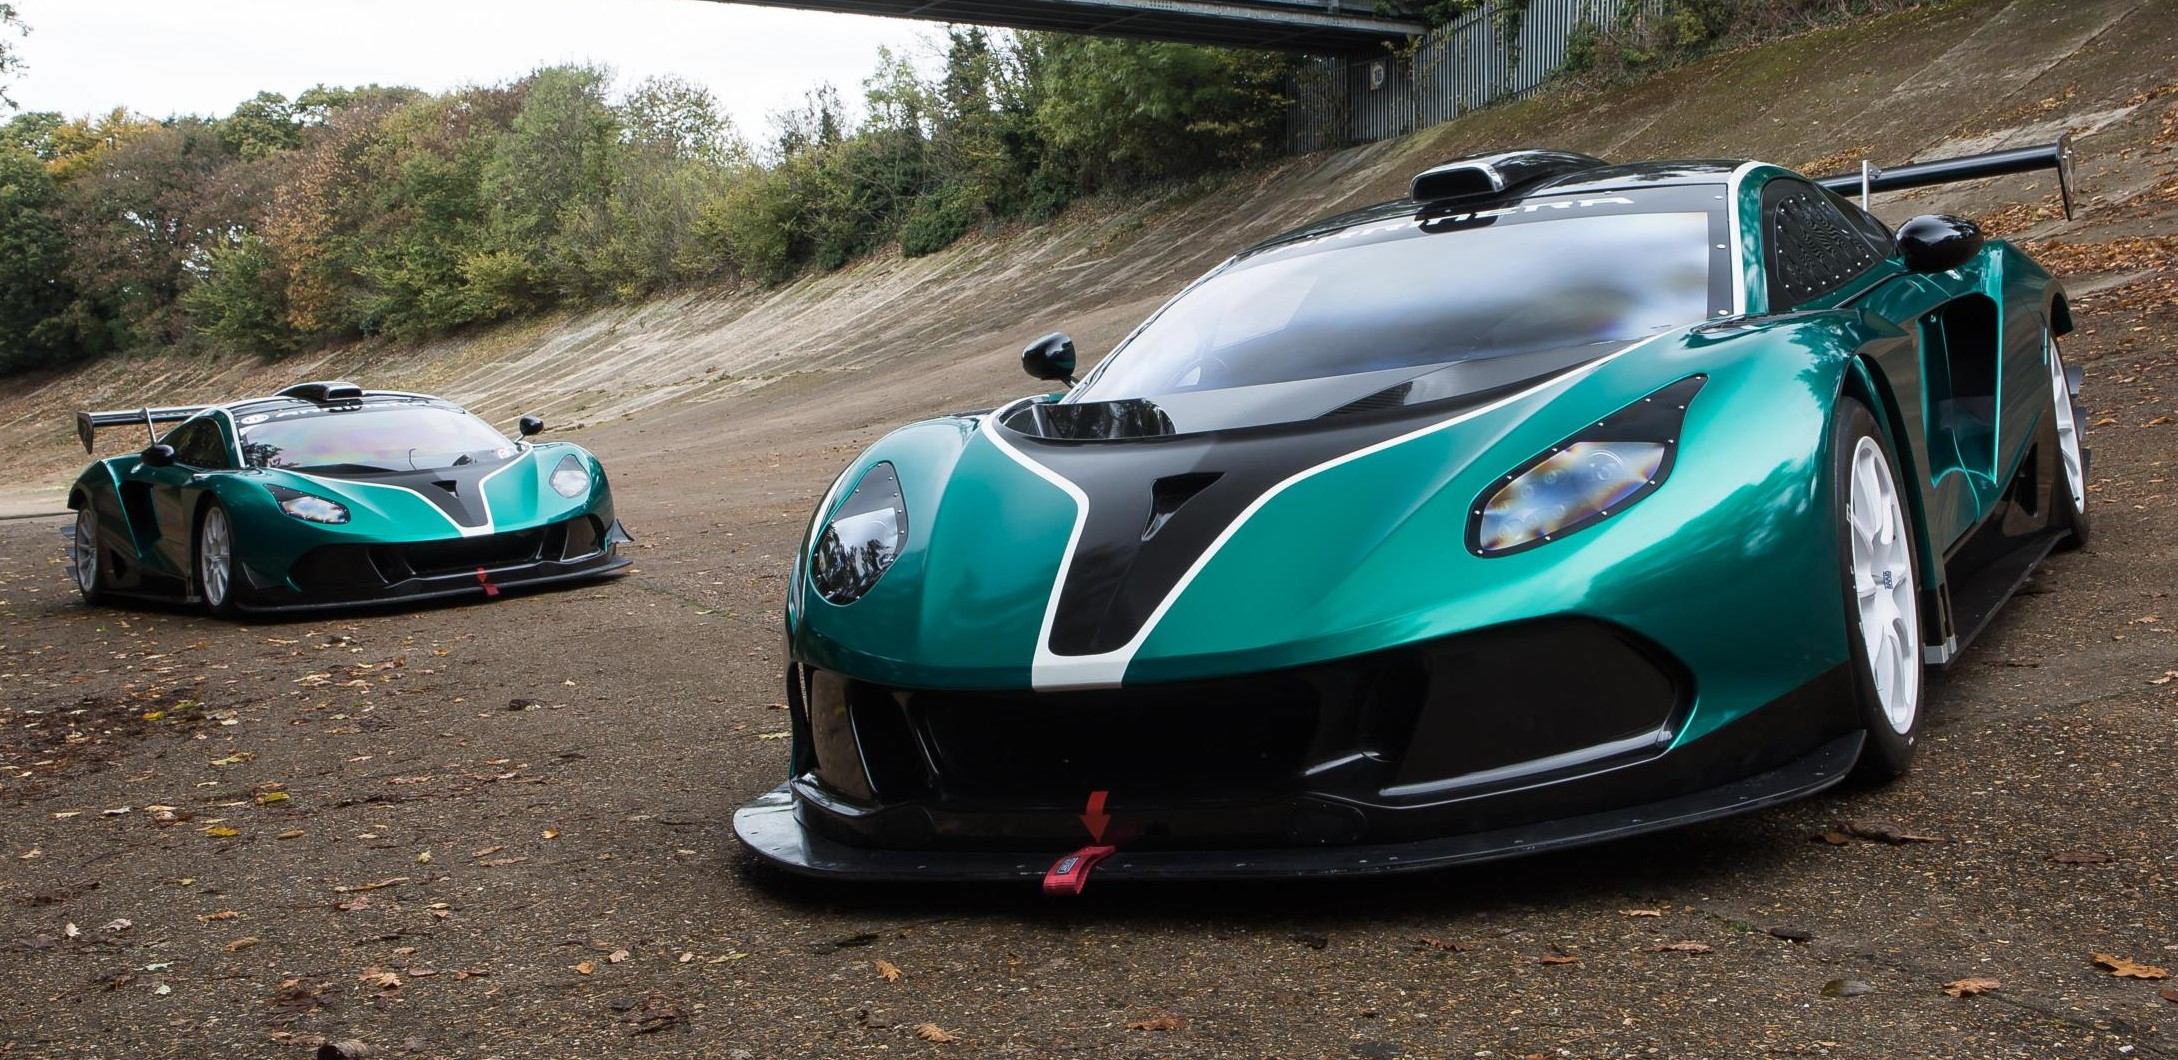 a-pair-of-arrinera-hussarya-gts-on-the-brooklands-banking